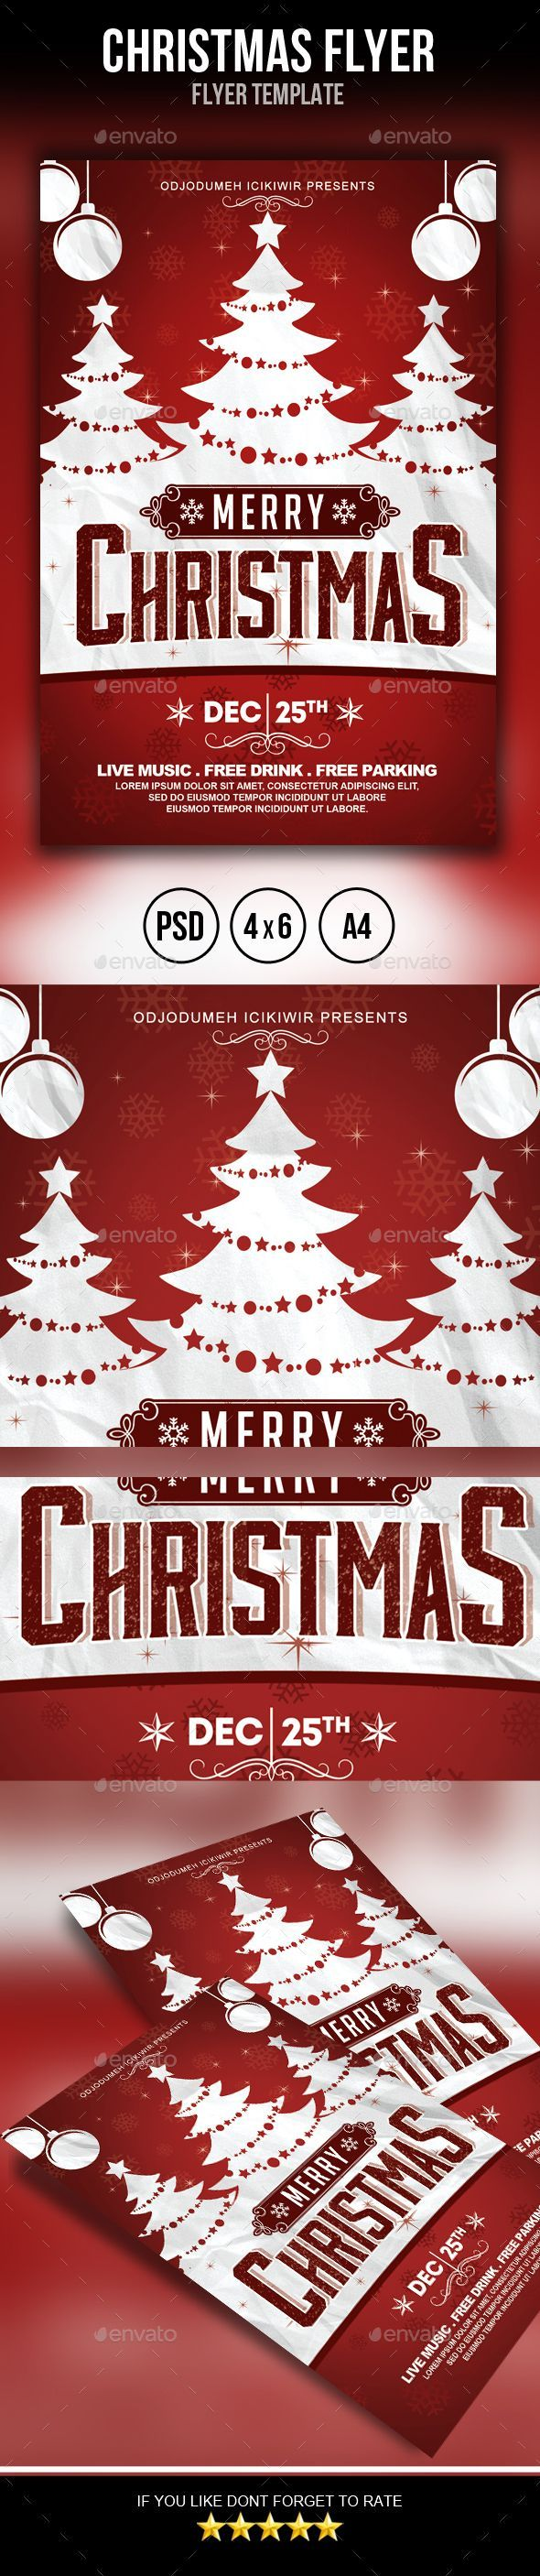 best images about holidays flyer design christmas flyer